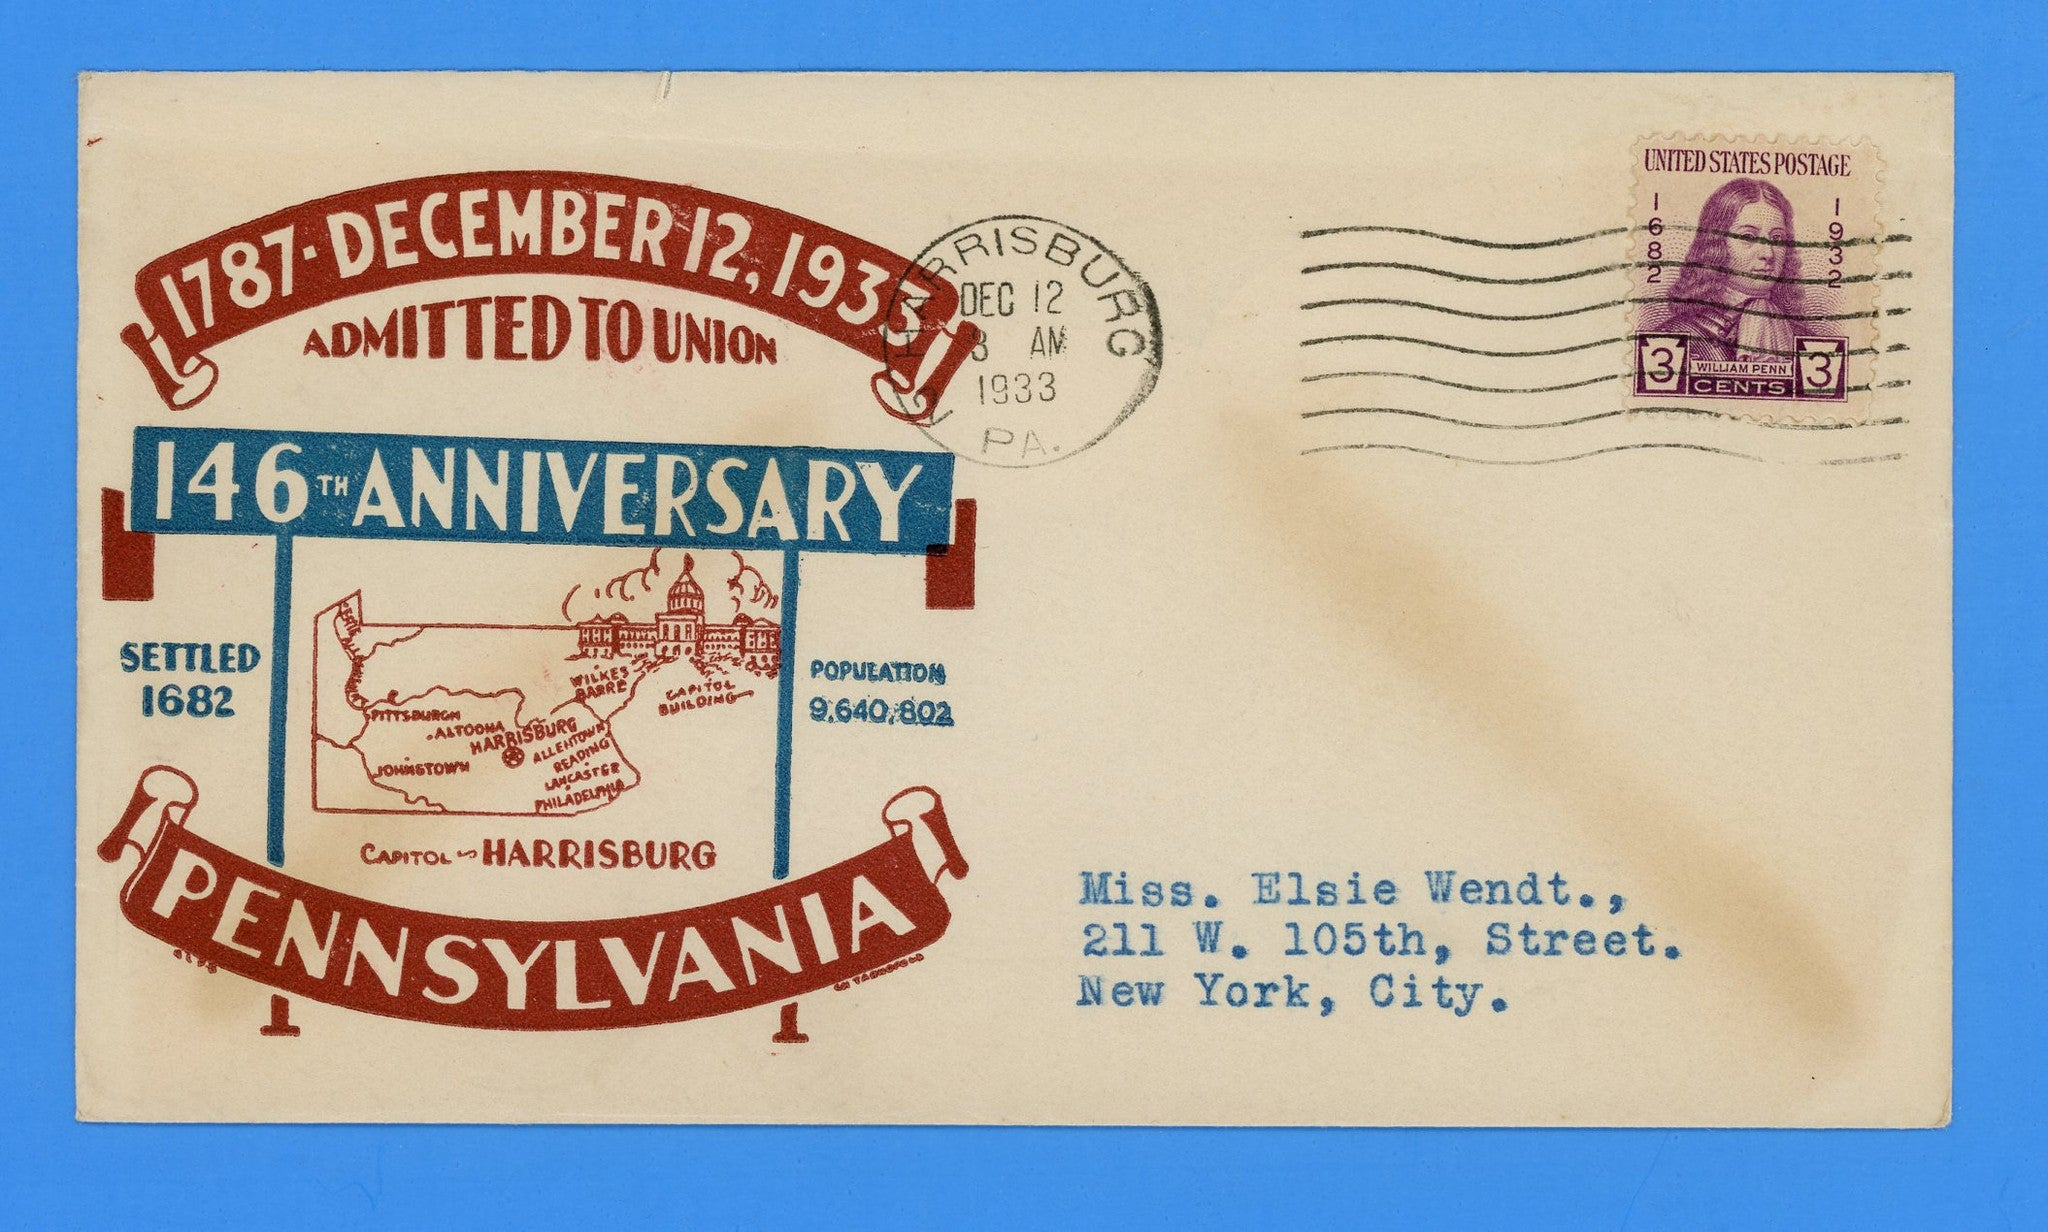 Pennsylvania Admitted to the Union 146th Anniversary December 12, 1933